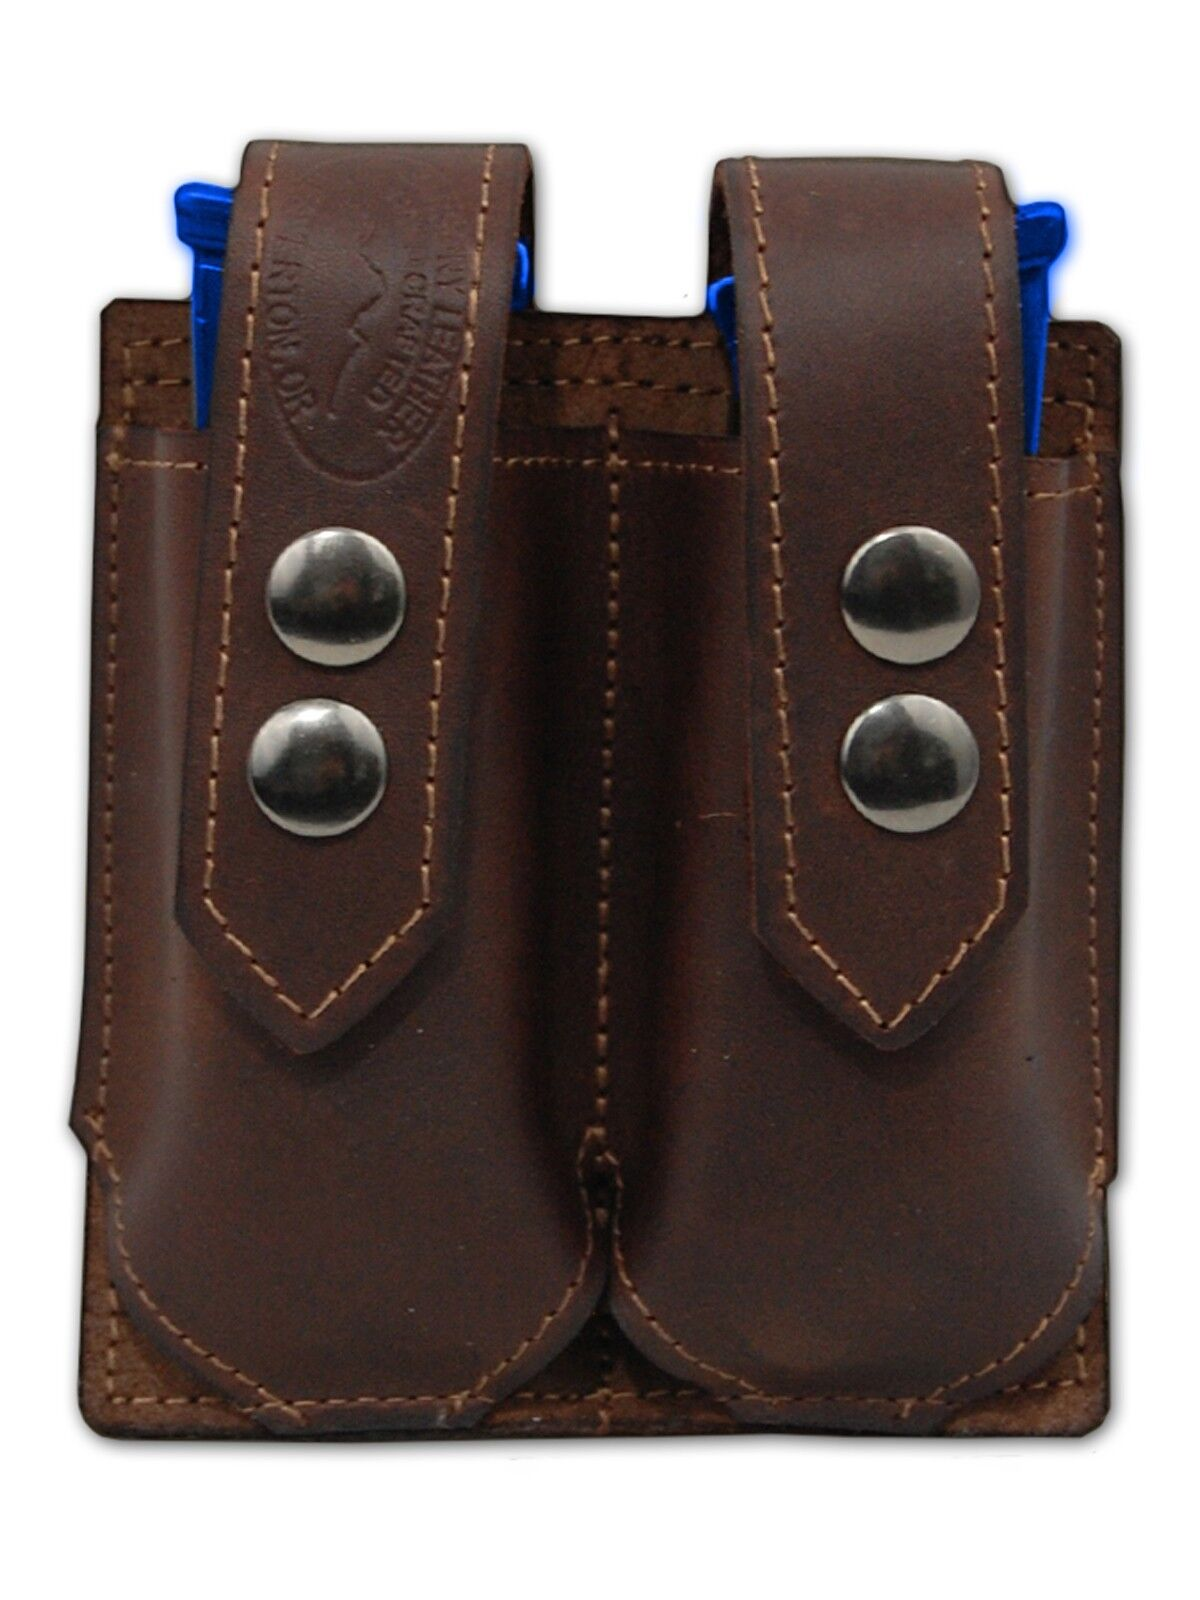 NEW Barsony Brown Leather Double Magazine Pouch Steyr Walther Full Size 9mm 40